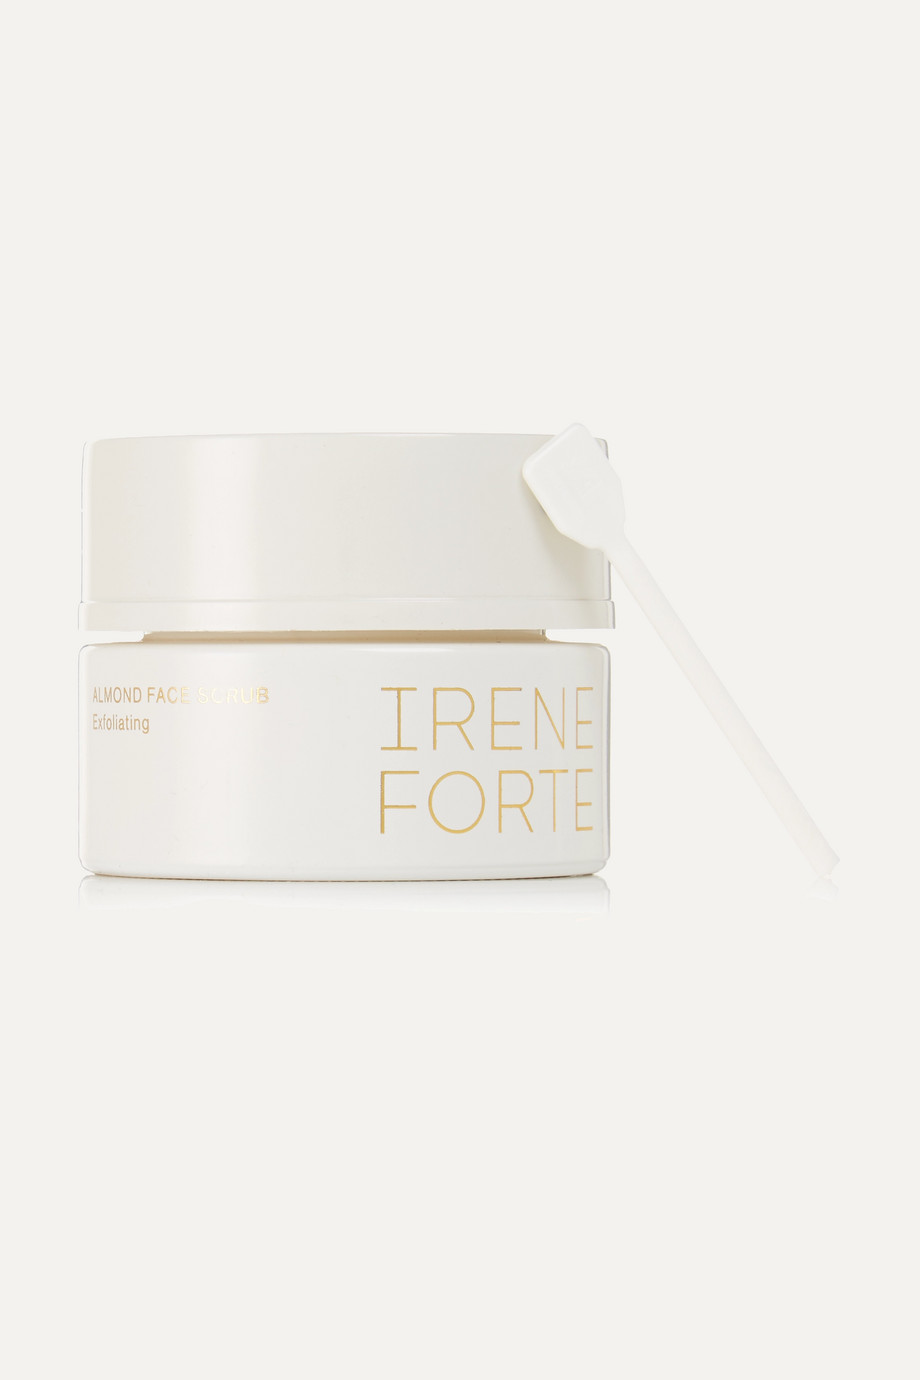 Irene Forte + NET SUSTAIN Exfoliating Almond Face Scrub, 50ml